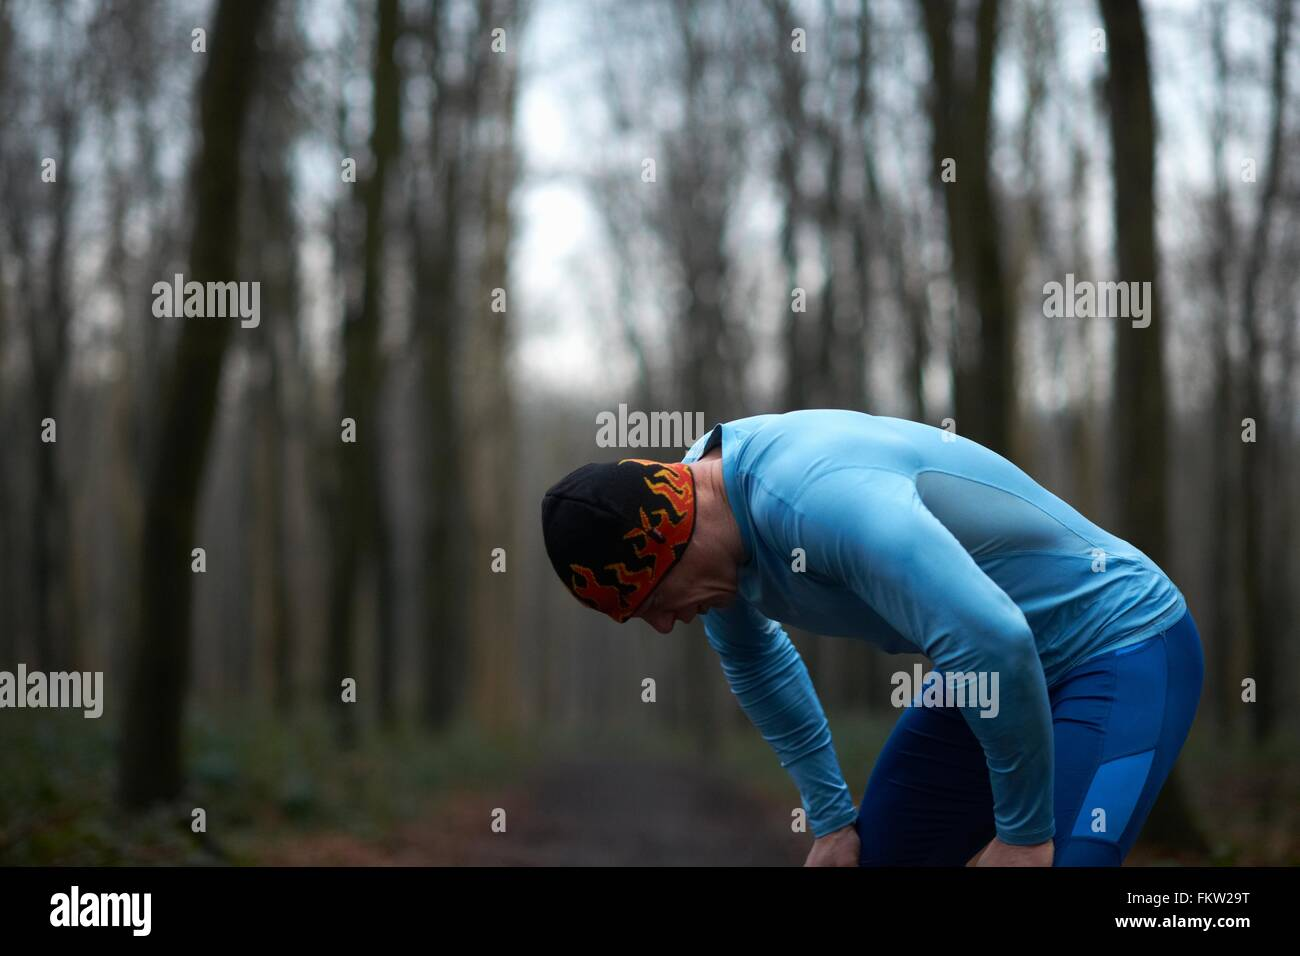 Runner wearing knit hat and spandex bending forward hands on knees exhausted - Stock Image